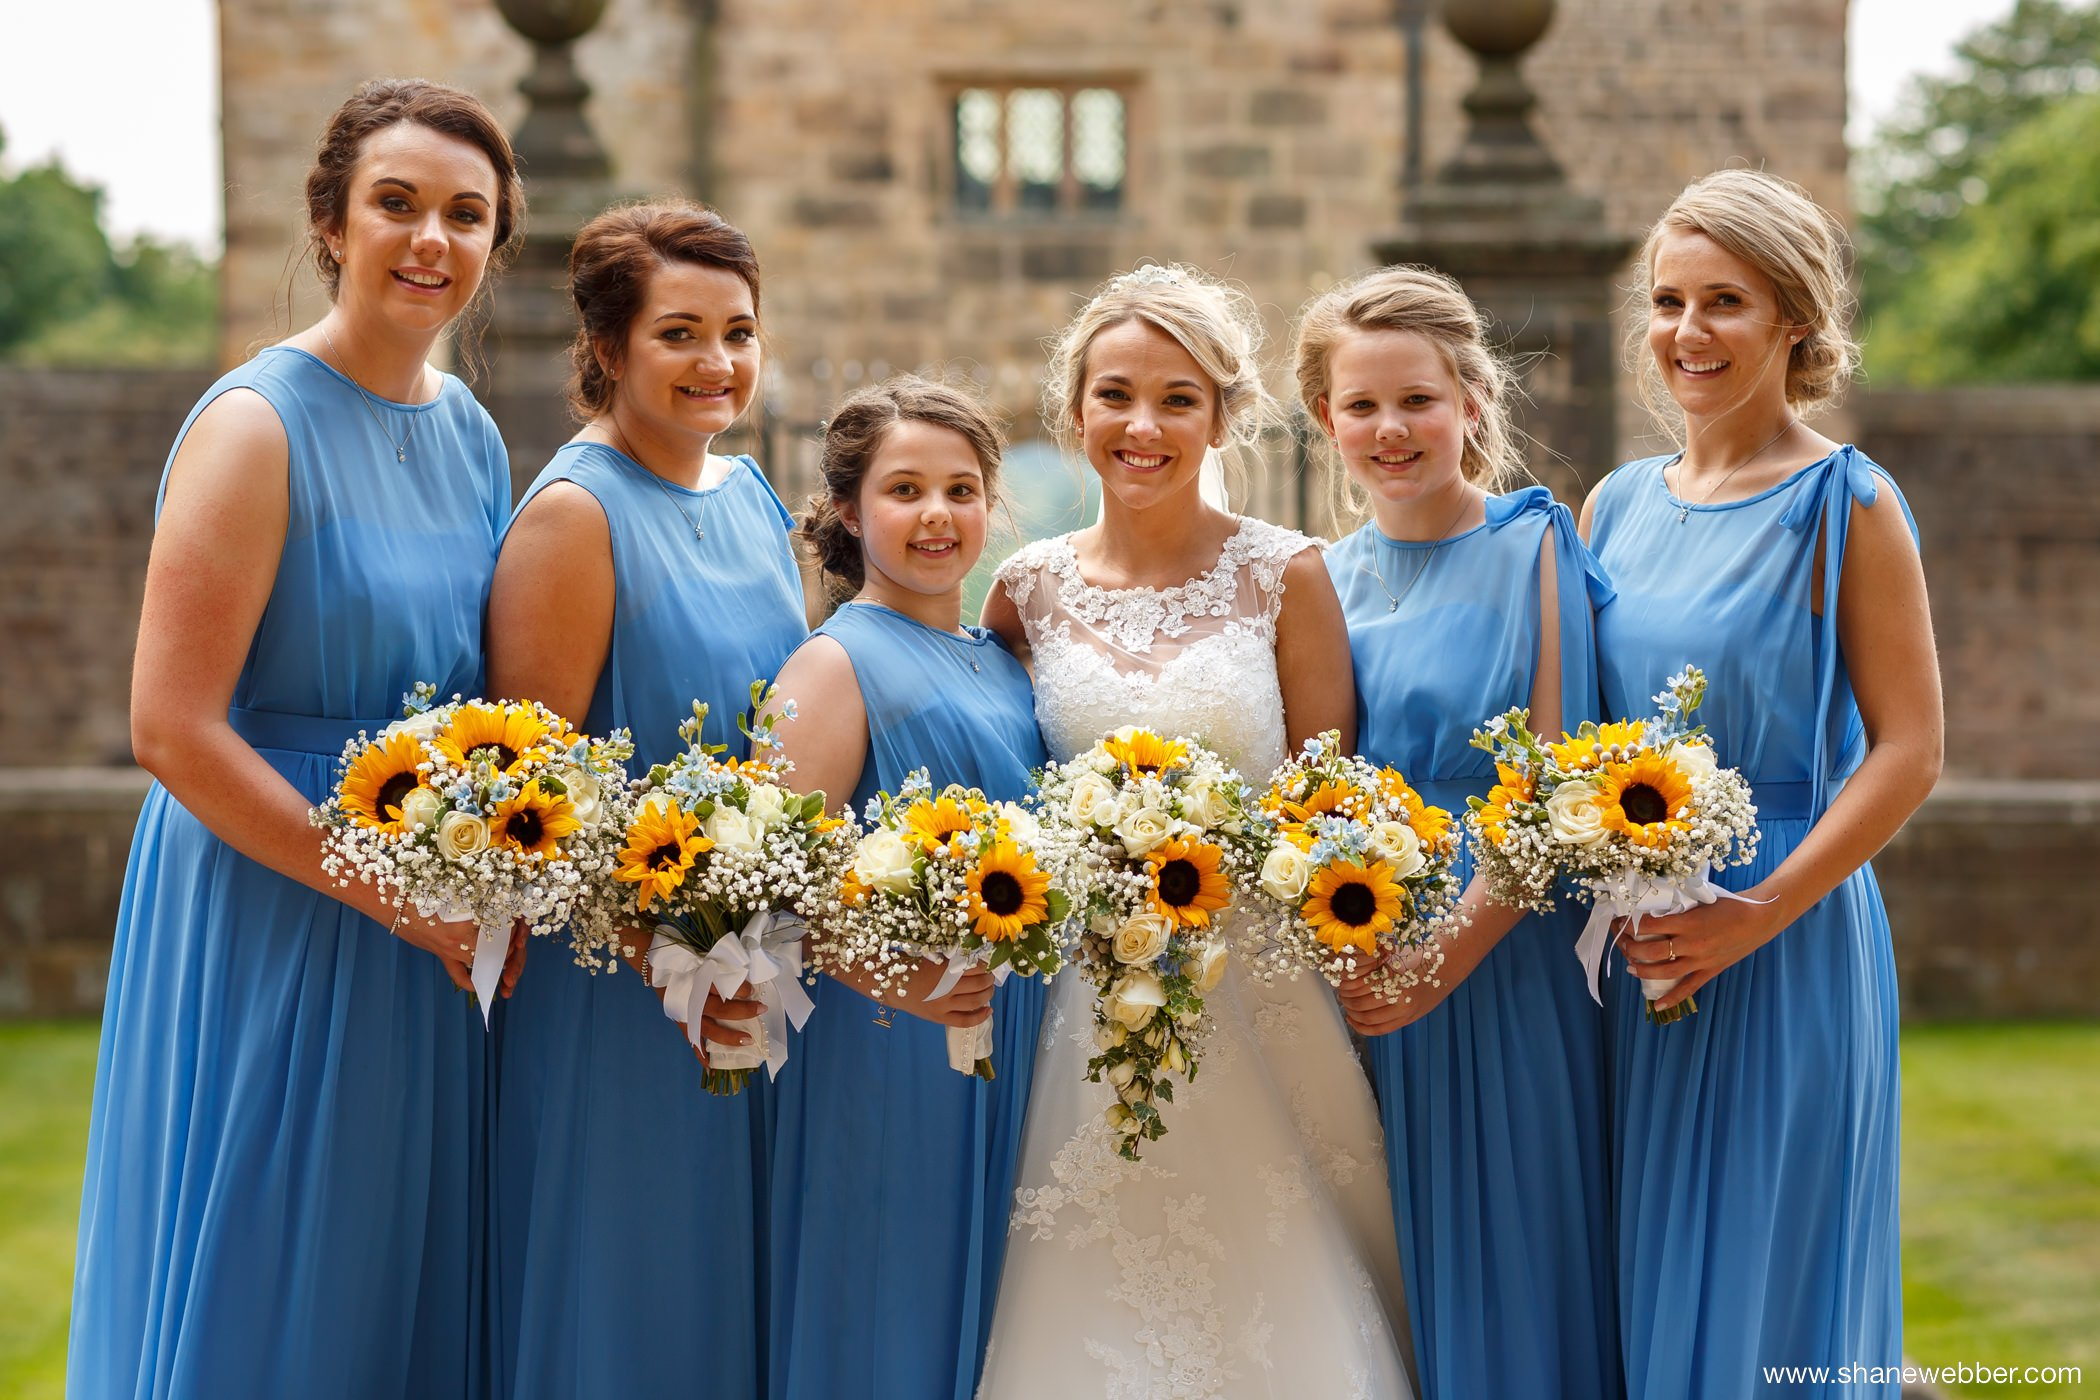 Wedding pictures at Hoghton Tower